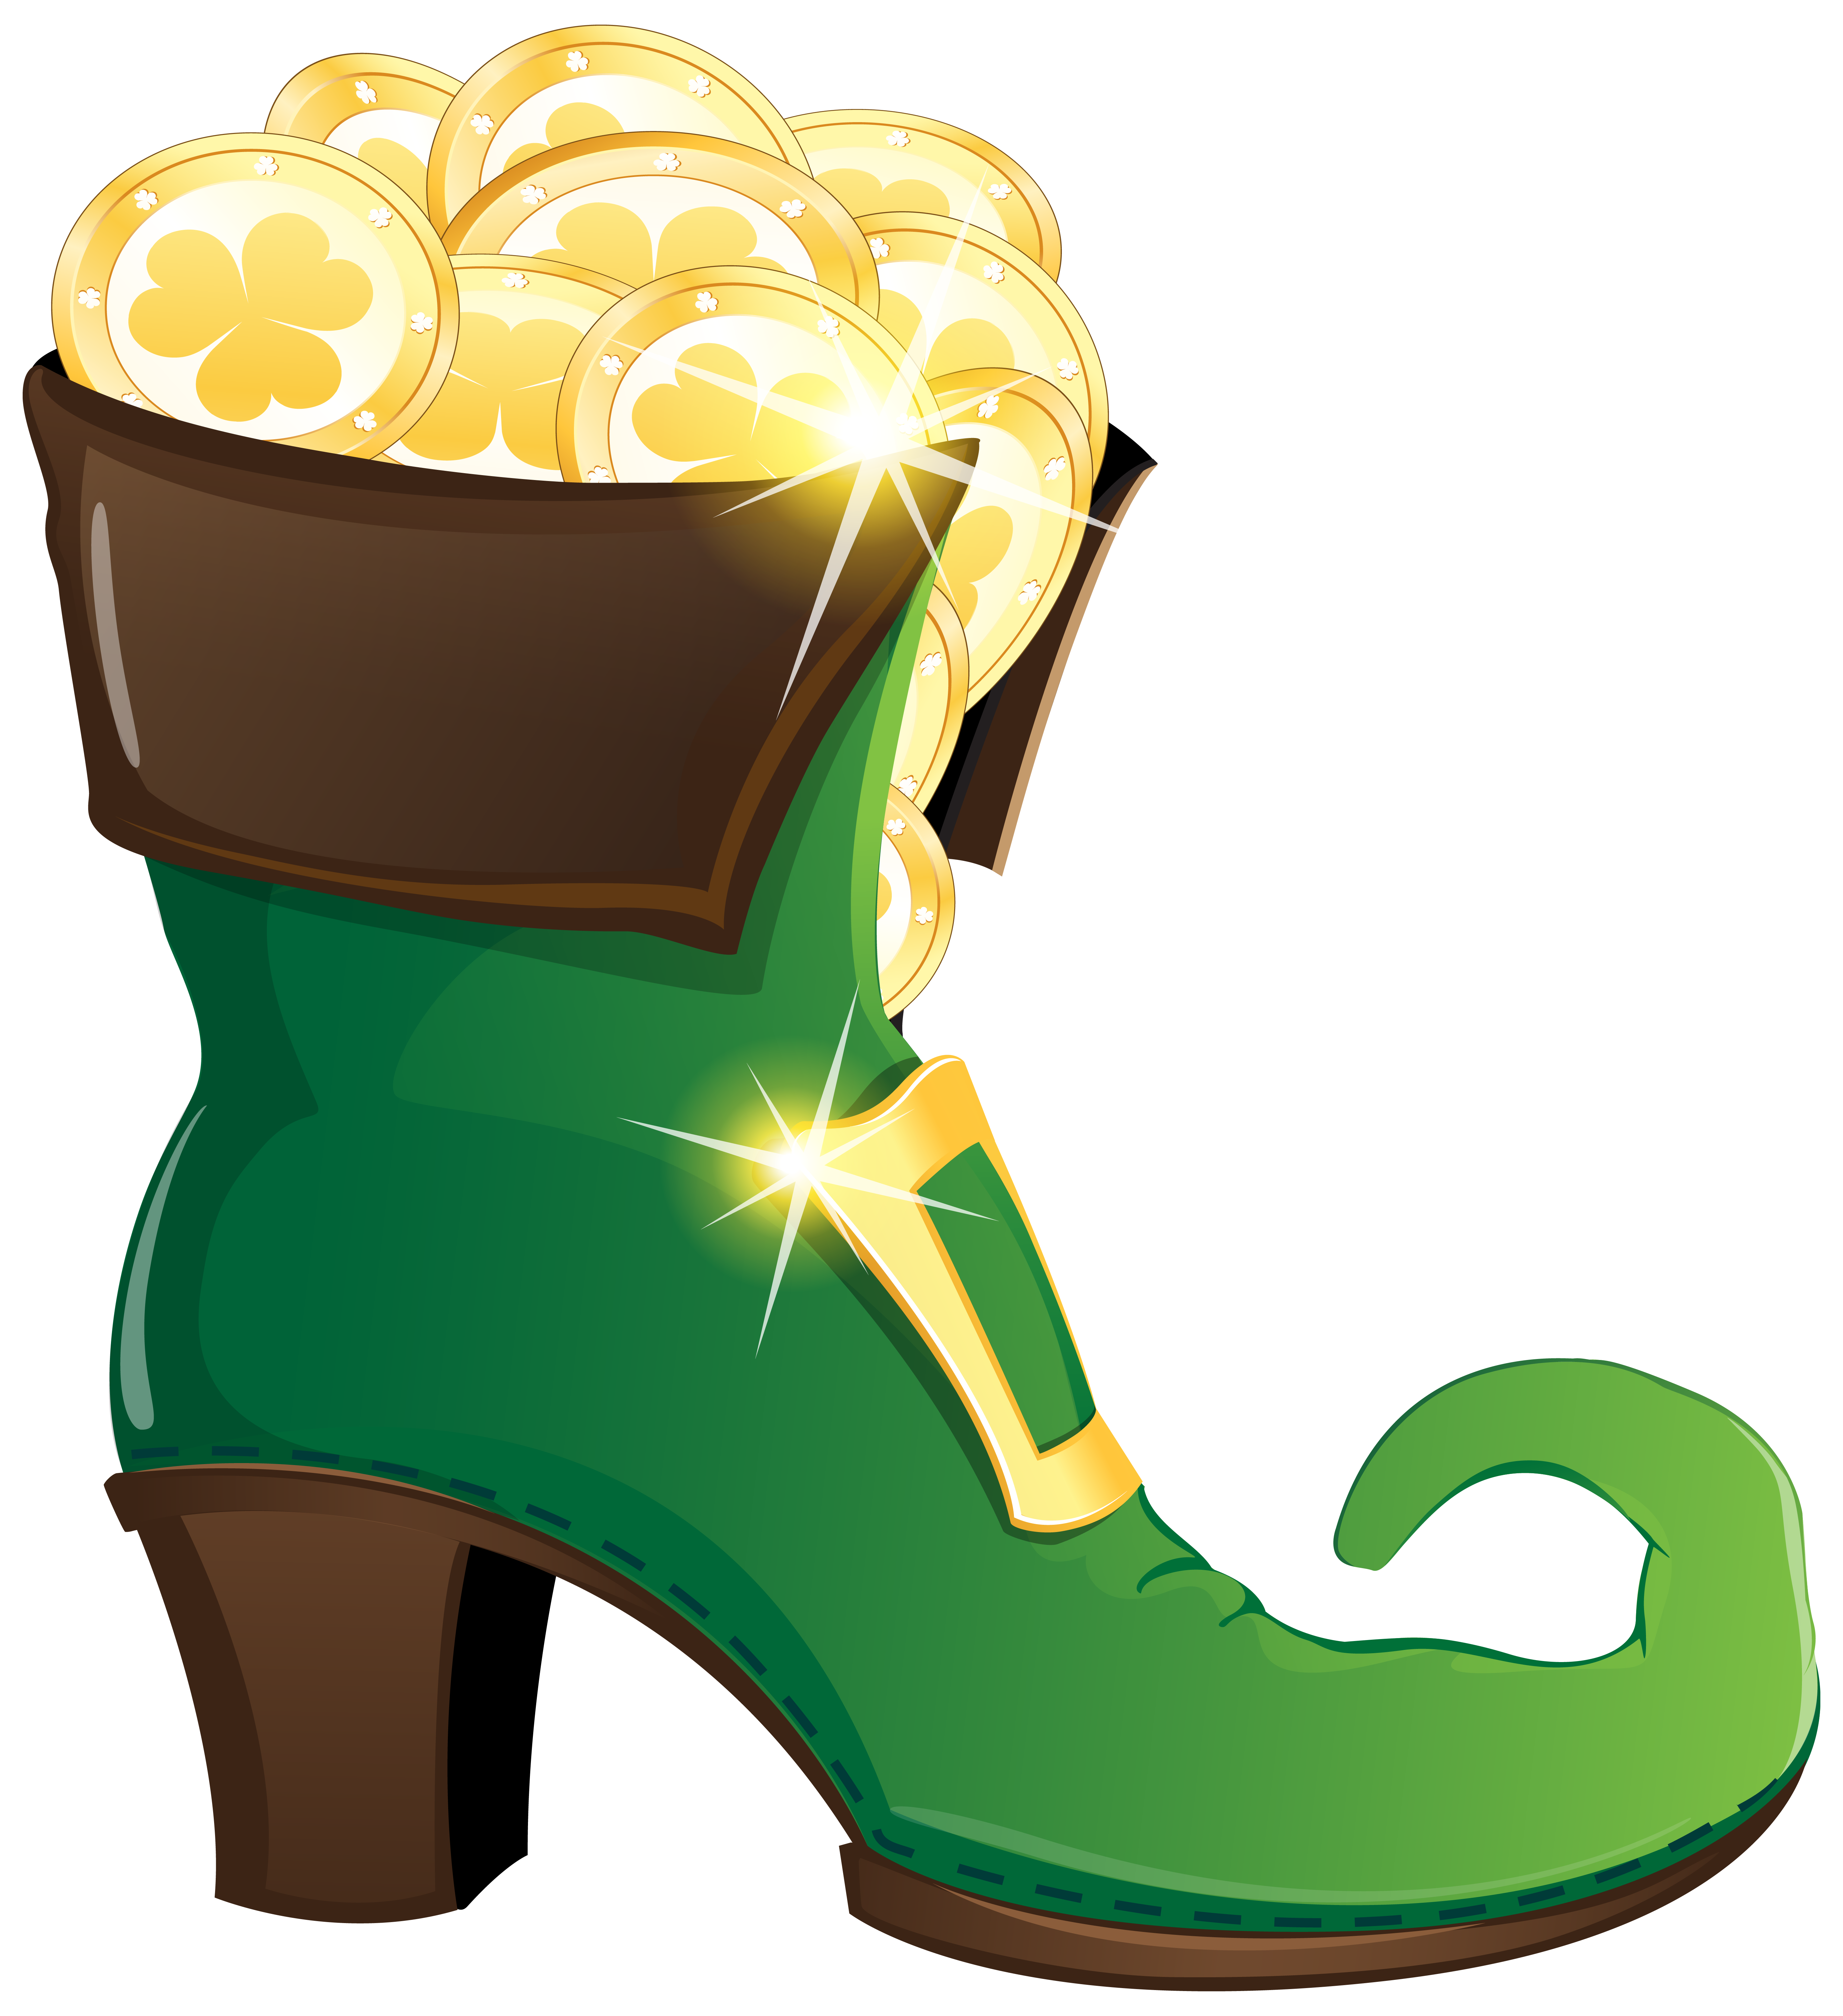 clip royalty free Coin pencil and in. Leprechaun shoes clipart.